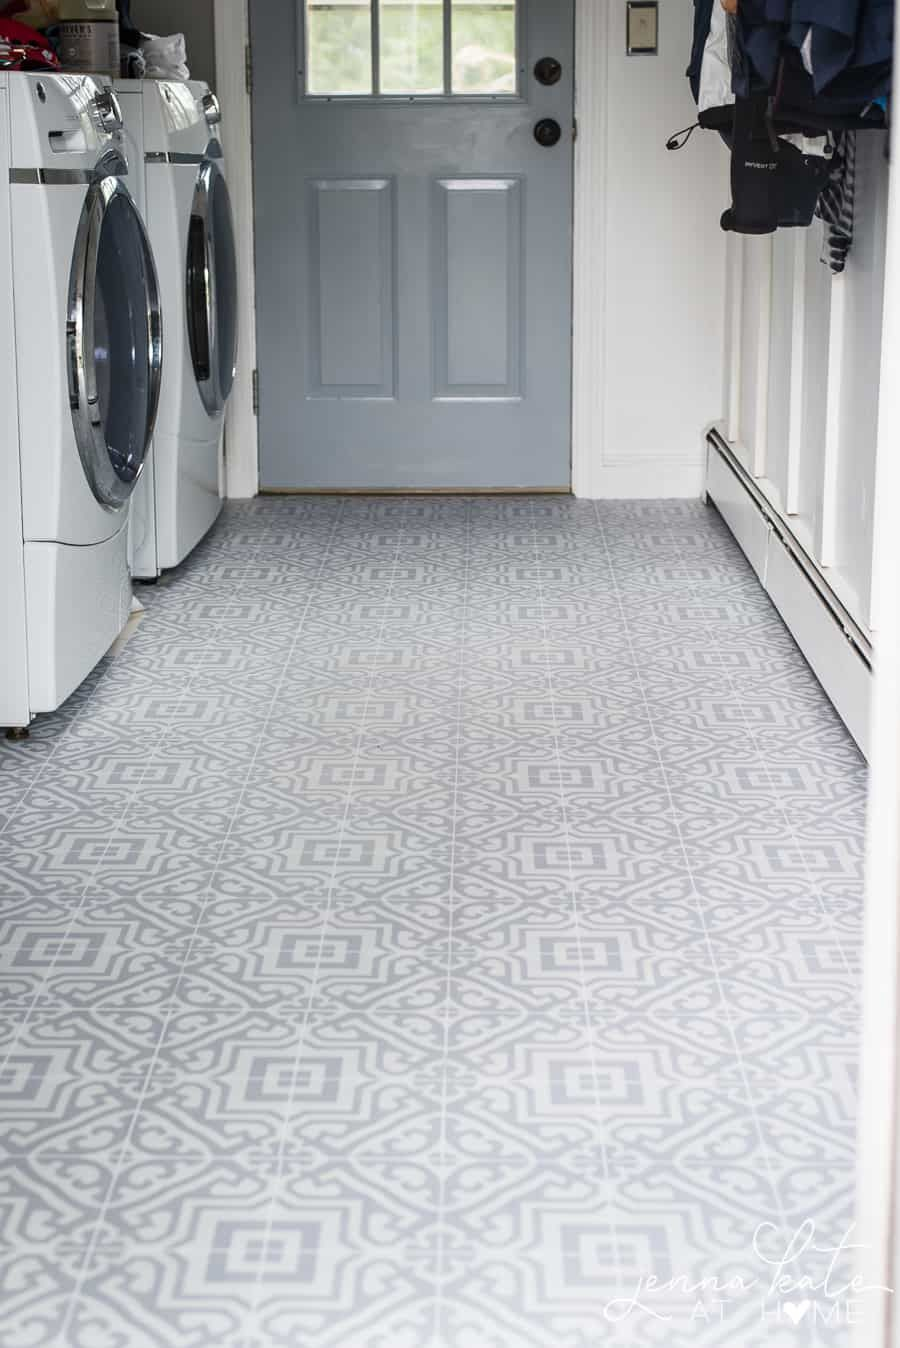 The Laundry Room Floor Laundry Room Flooring Vinyl Flooring